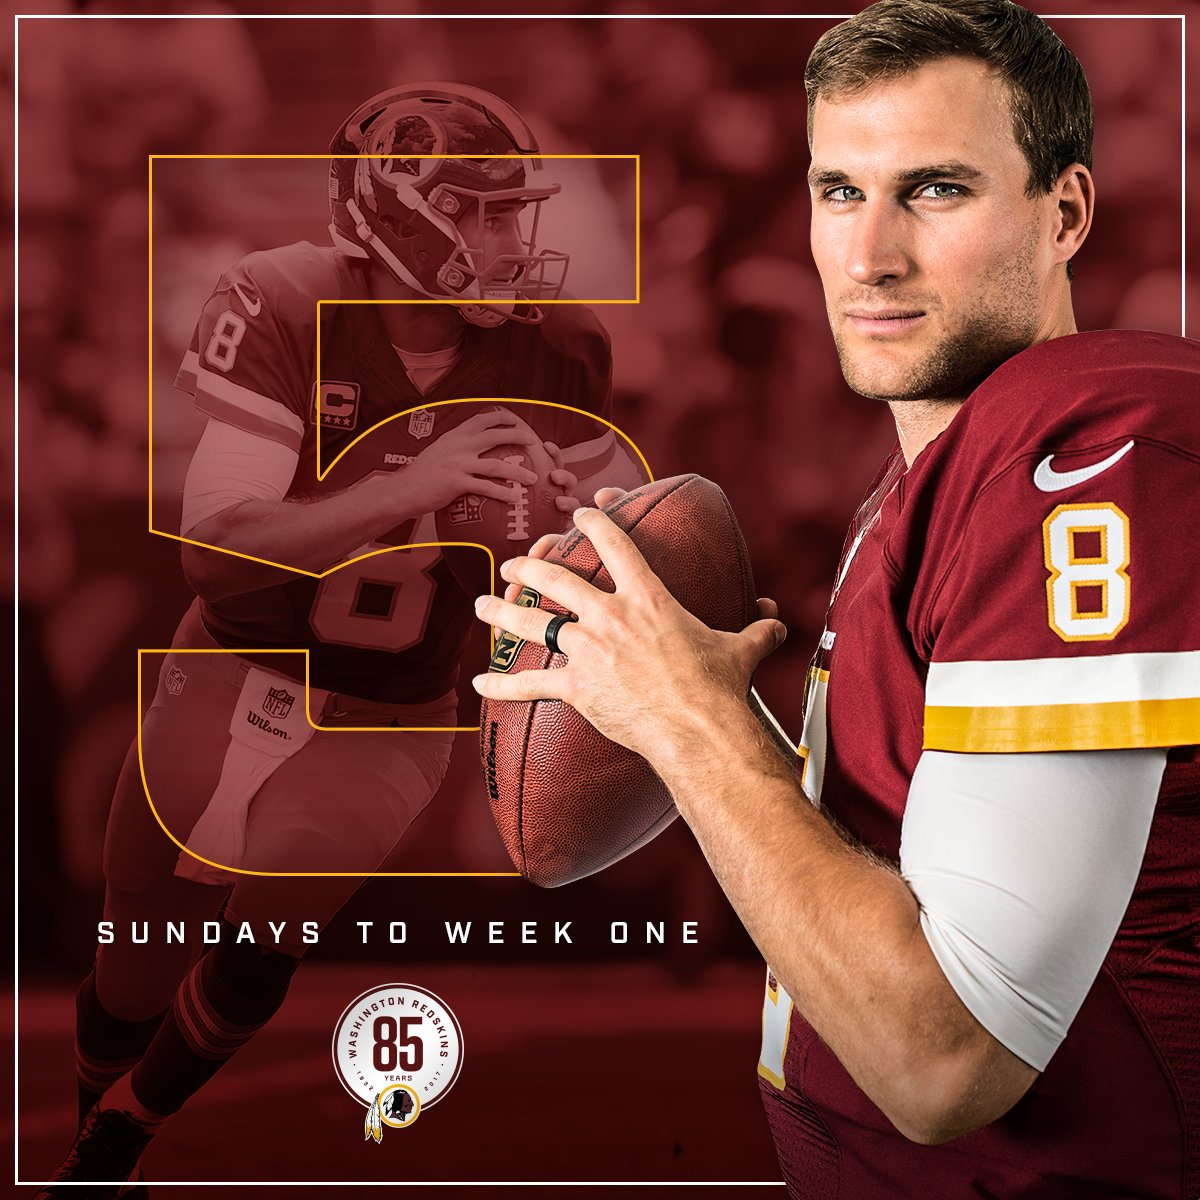 Getting close. #HTTR #PHIvsWAS https://t.co/xQ8qL23RQY